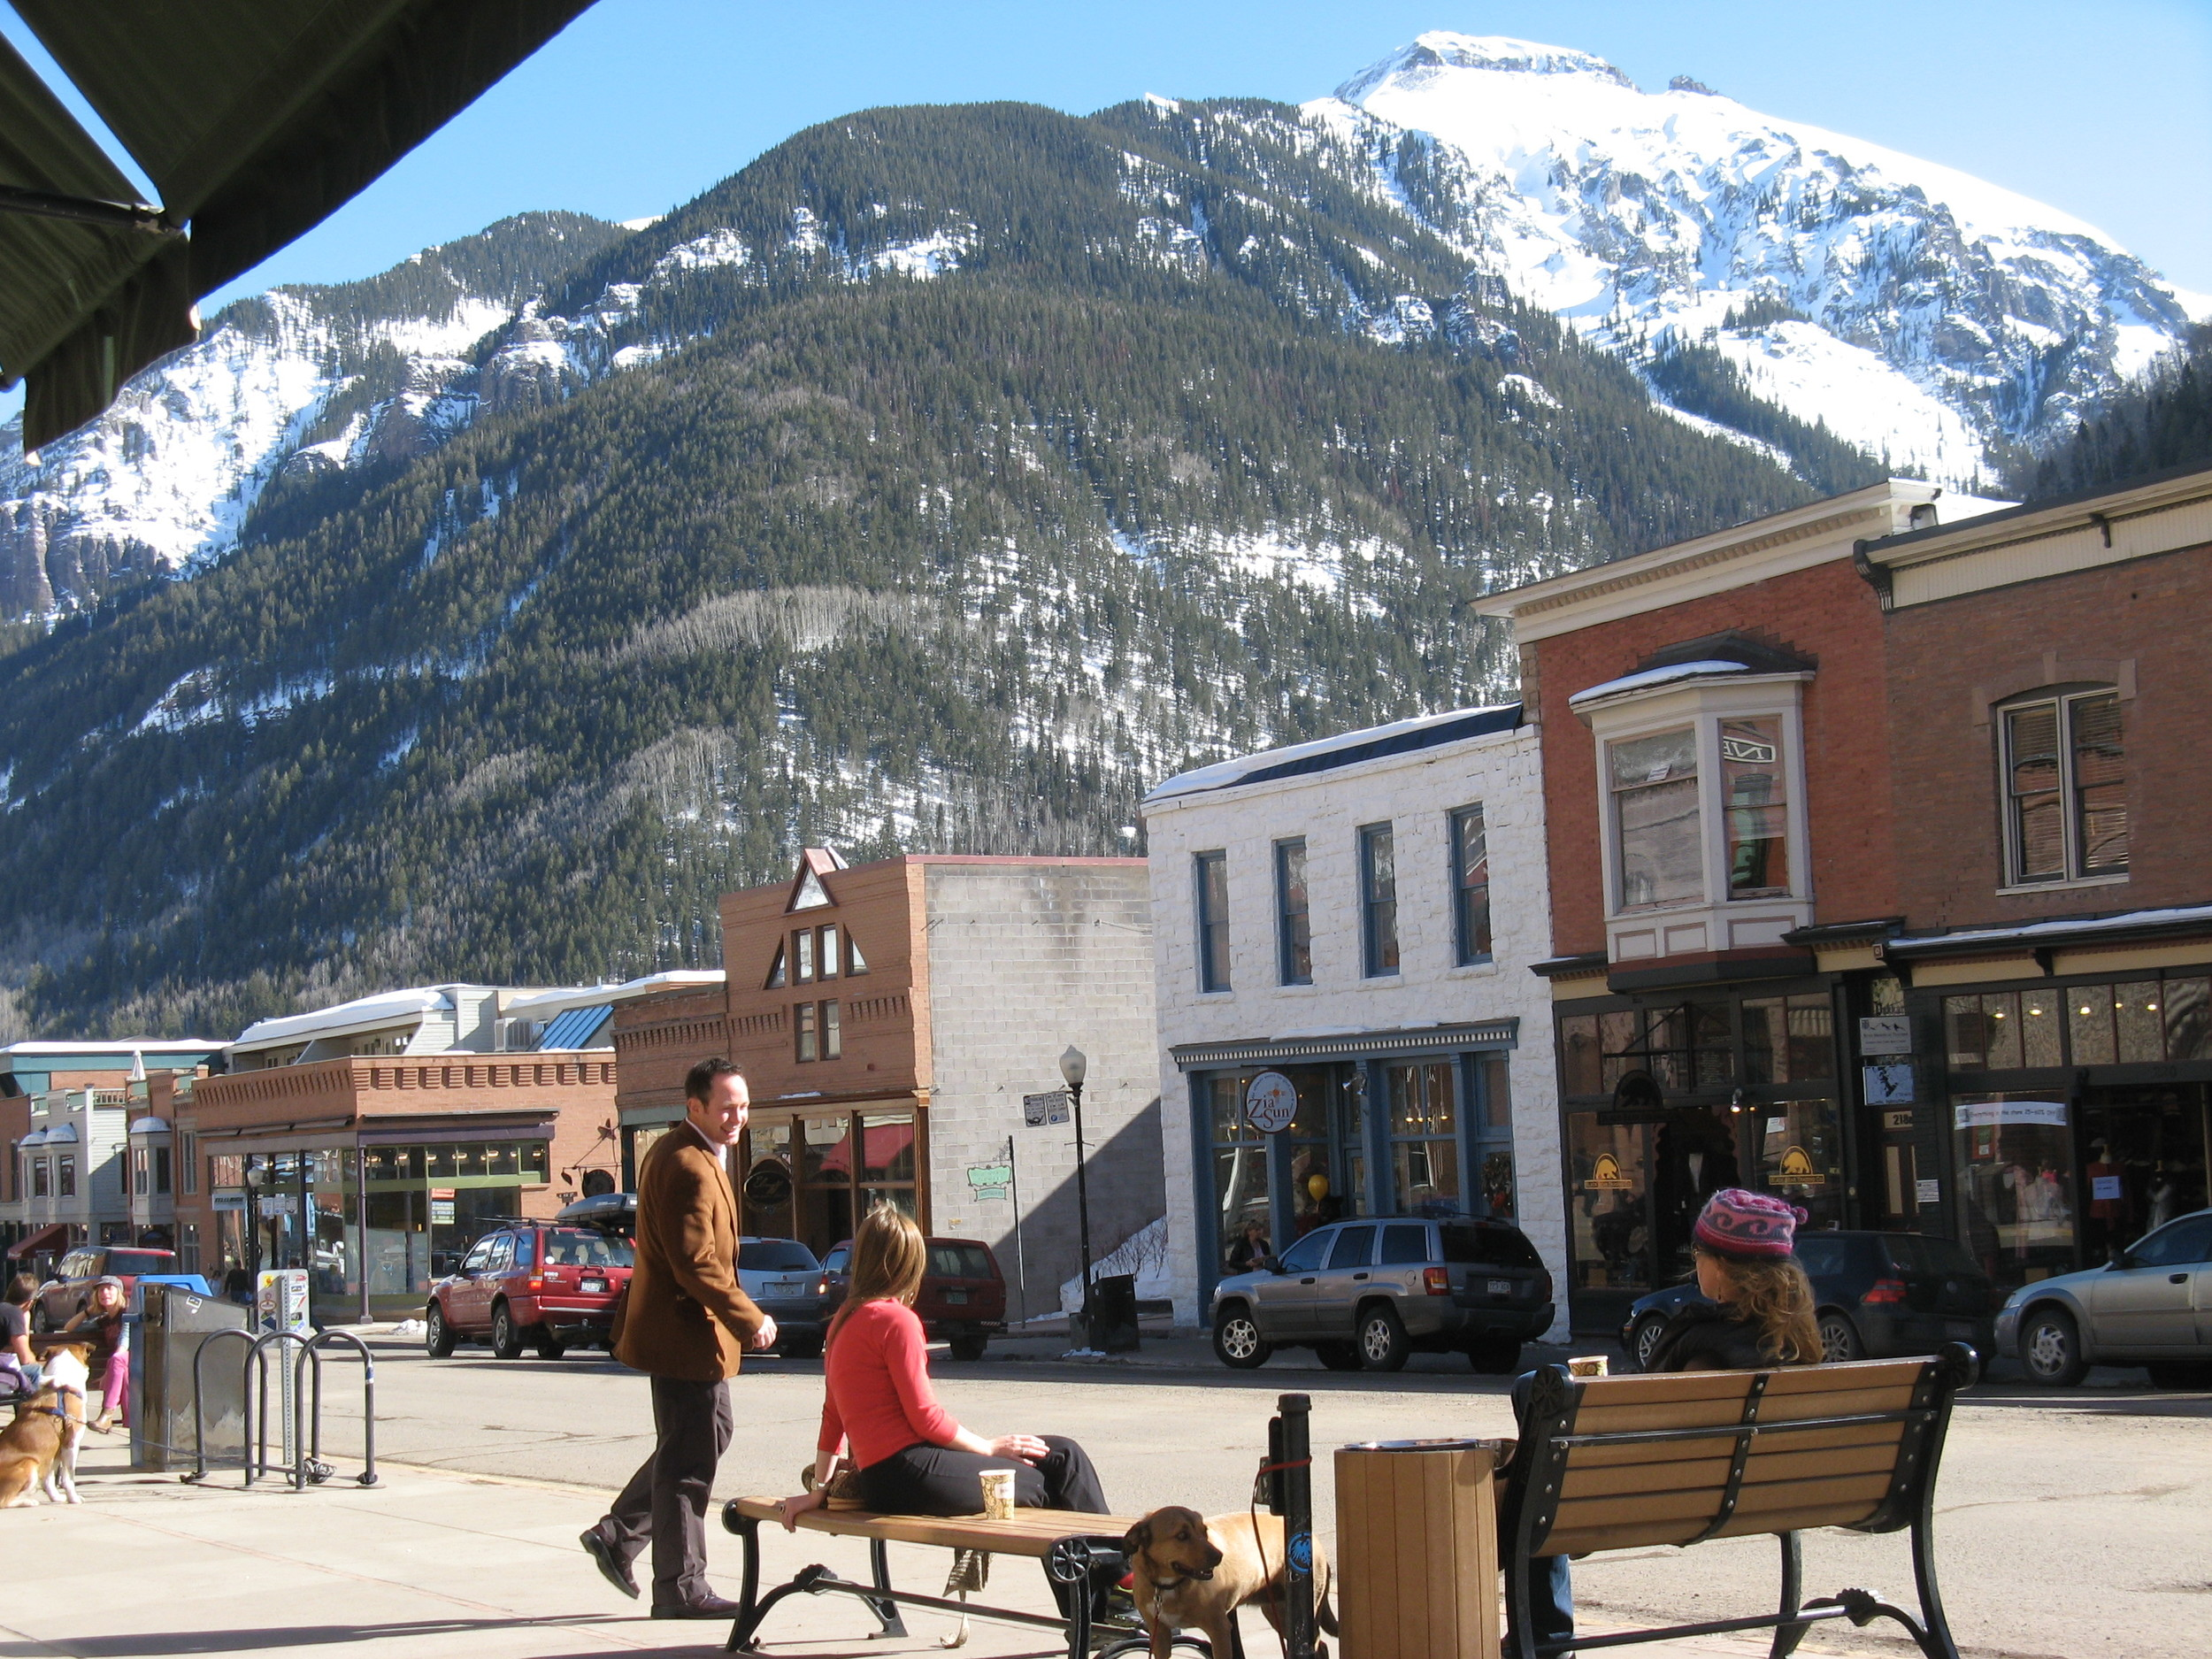 (Houston Chronicle 2009. Photo by Joy Sewing)  TELLURIDE, COLO. - It was as if painter  Roger Mason  knew I was coming.  He stood in the middle of the street with his easel, canvas and brush working on a colorful vision of Telluride's dreamy downtown.  I dropped my luggage at the door of my hotel to watch him work.  Blue clouds settled over the rugged San Juan Mountains in the background. It was early morning, and locals with large, friendly dogs strolled down Colorado Avenue -- Telluride's main street -- heading for their jolt of coffee at one of the many cafes.   More